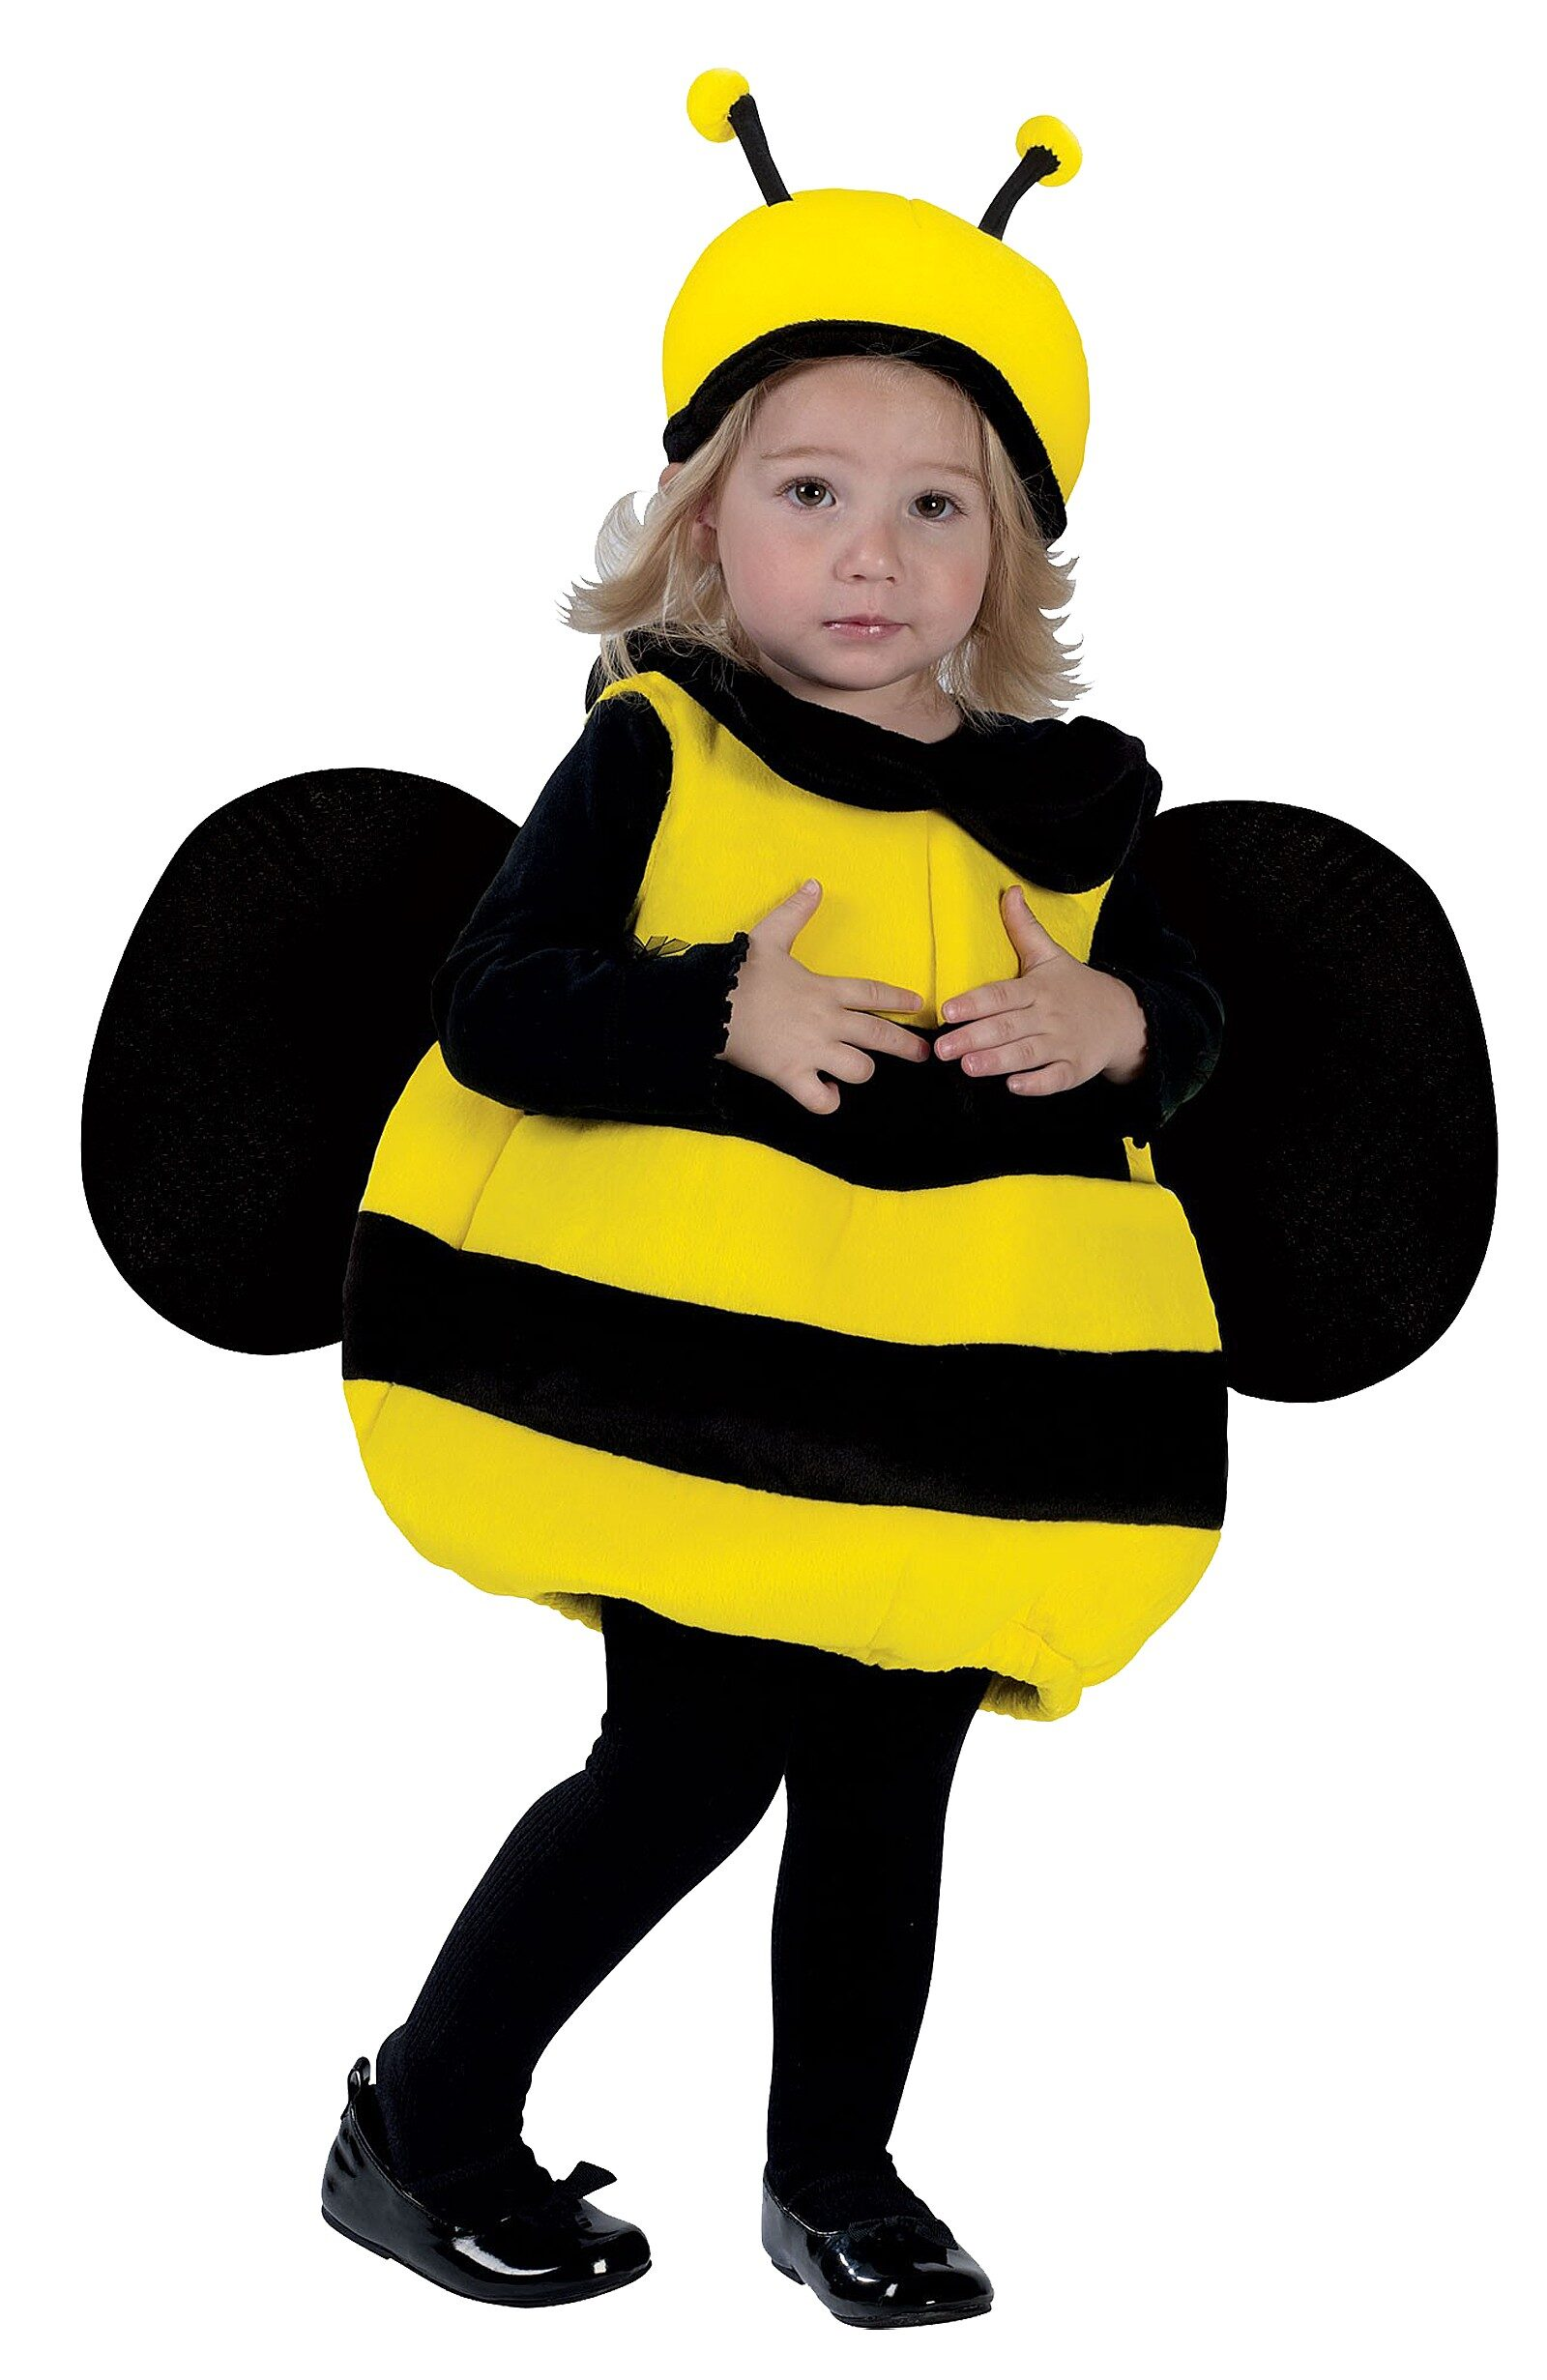 cd49cf3e430 Bumble Bee Costumes - Mr. Costumes